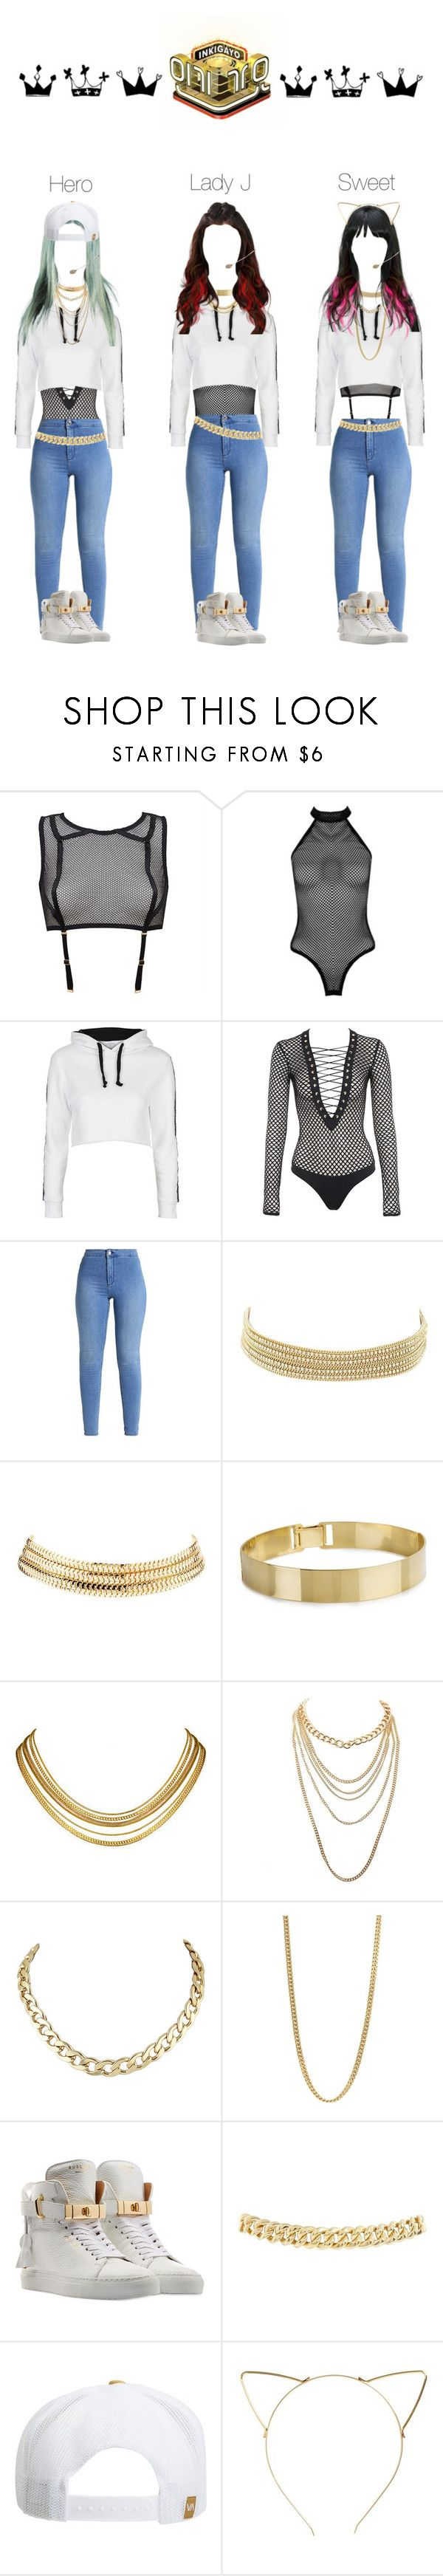 """[Comeback Stage] HotQueen's - Upgrape U / Inkigayo"" by sheisjulia ❤ liked on Polyvore featuring Boohoo, Topshop, Charlotte Russe, Marc by Marc Jacobs, BUSCEMI, RVCA, BP. and DV"